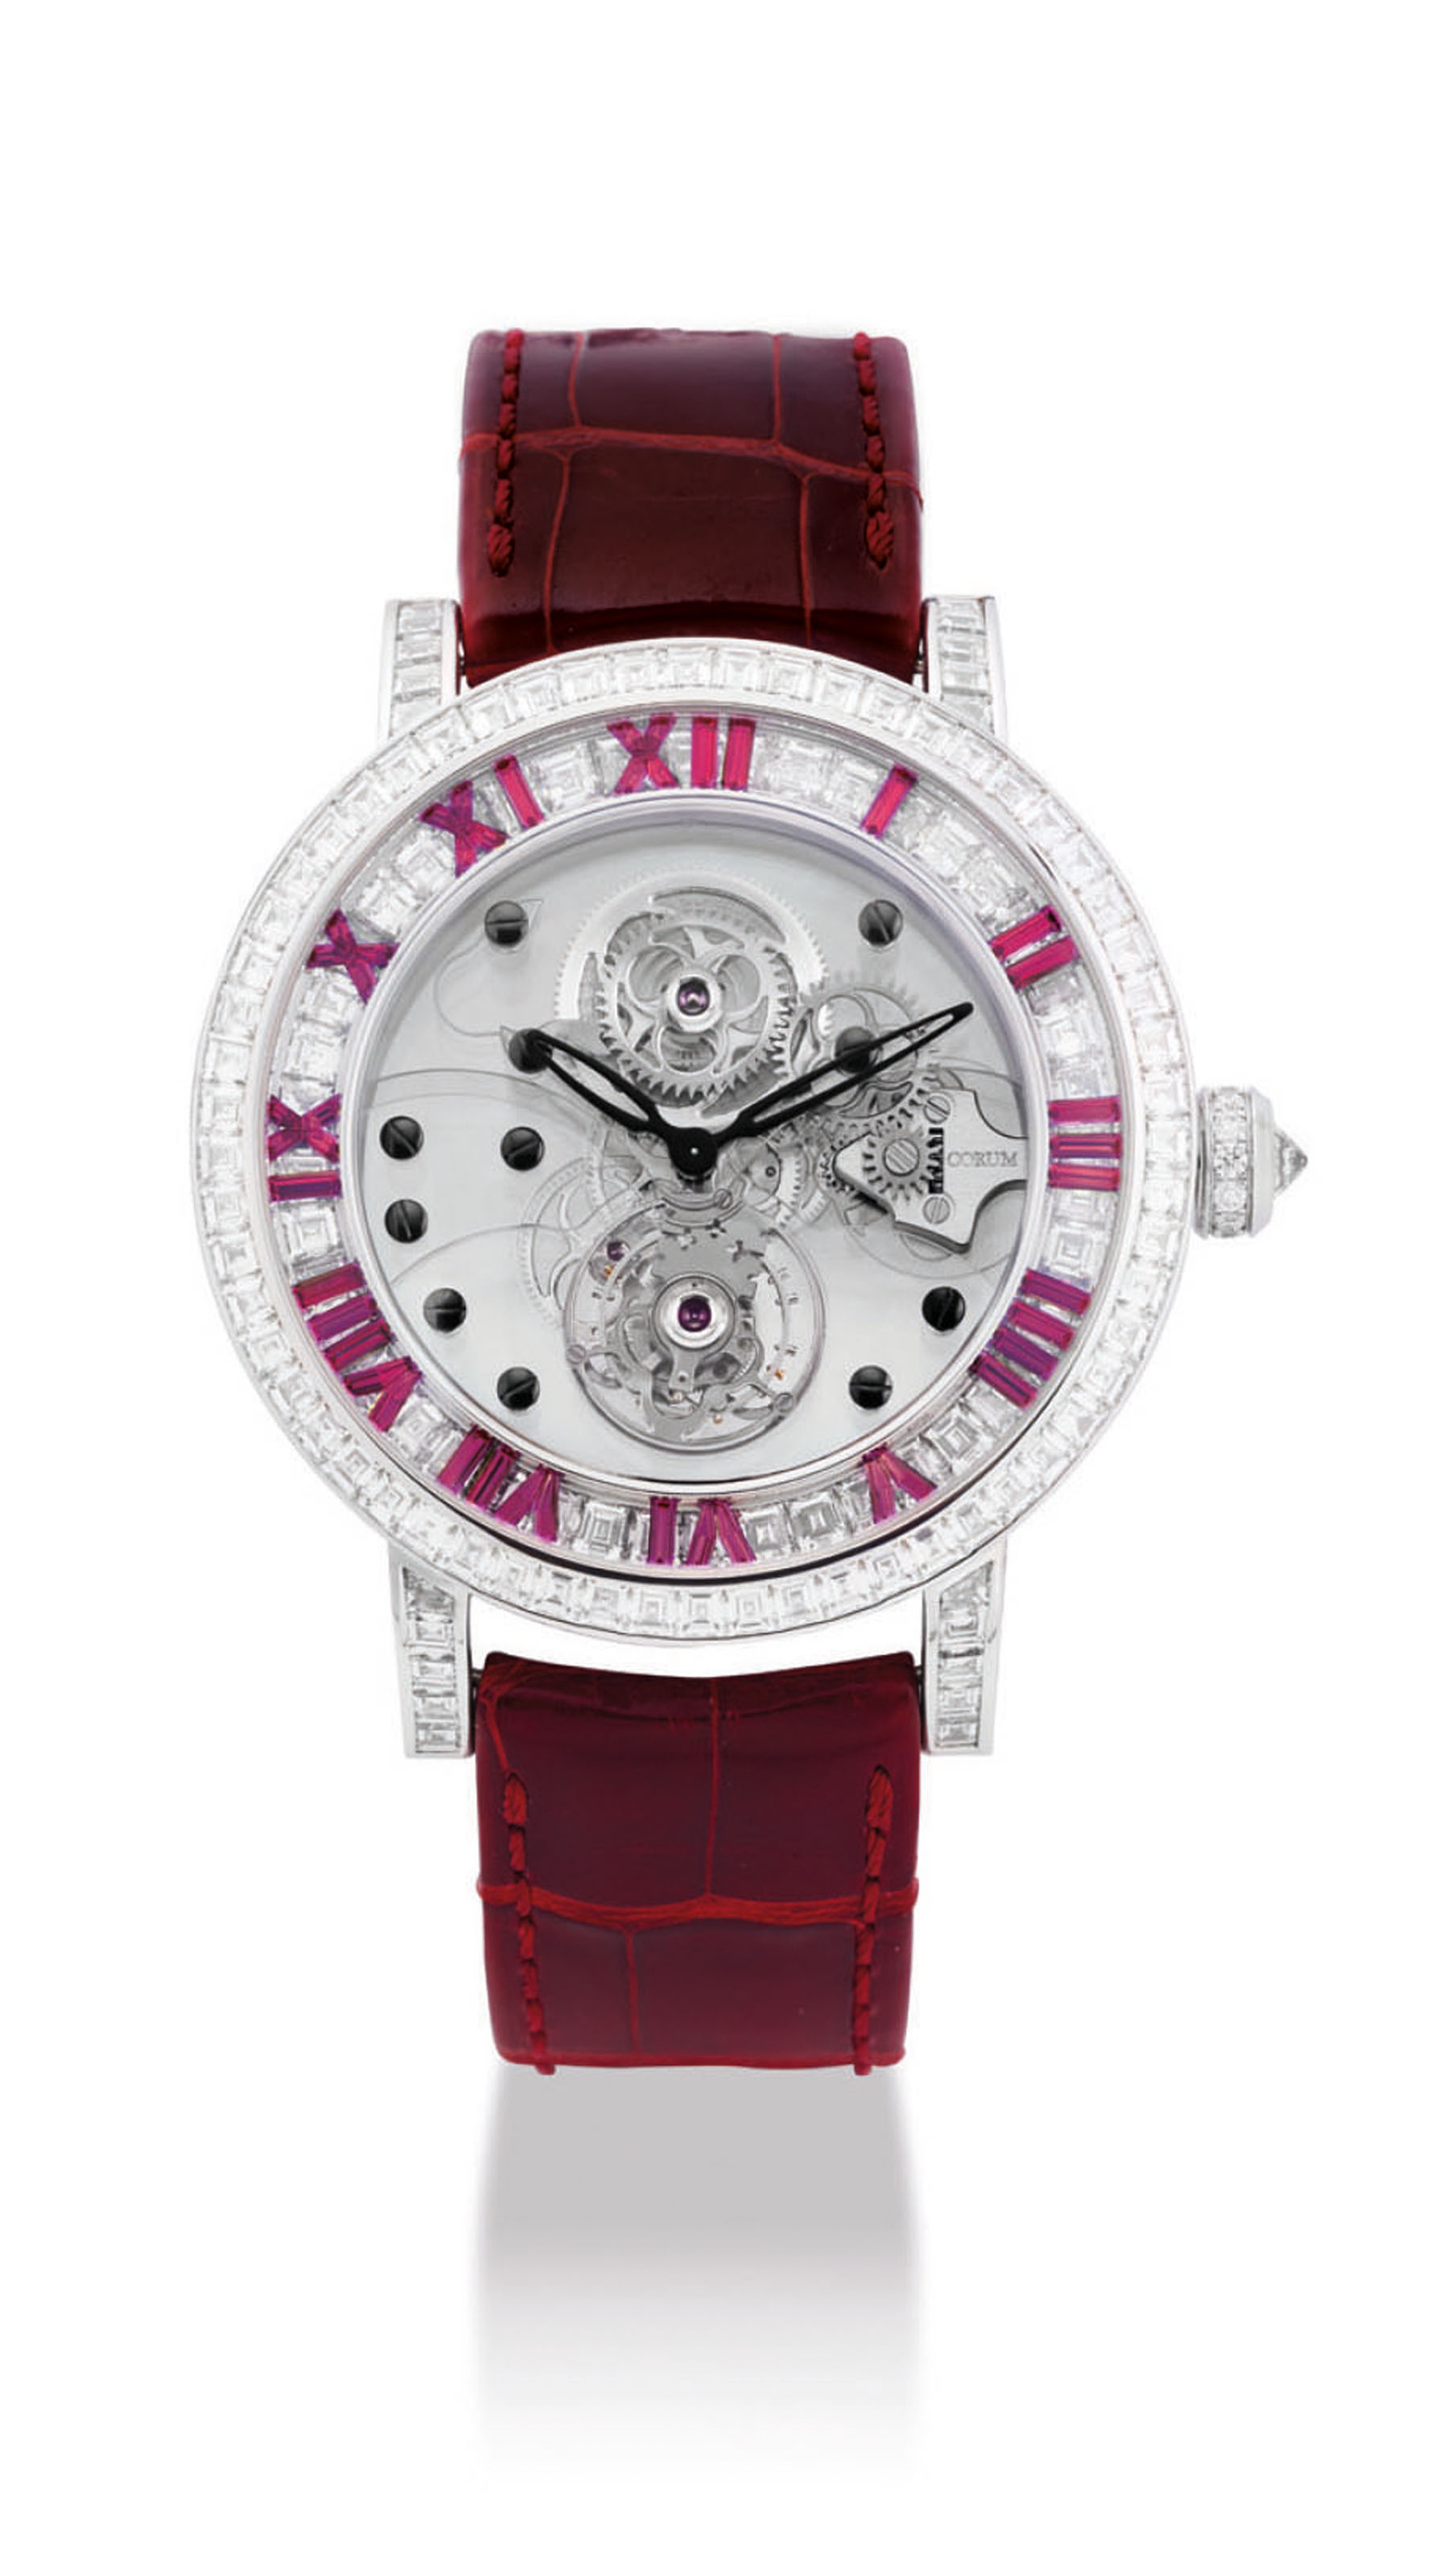 CORUM. AN IMPRESSIVE AND VERY FINE 18K WHITE GOLD, DIAMOND AND RUBY-SET LIMITED EDITION SKELETONISED TOURBILLON WRISTWATCH